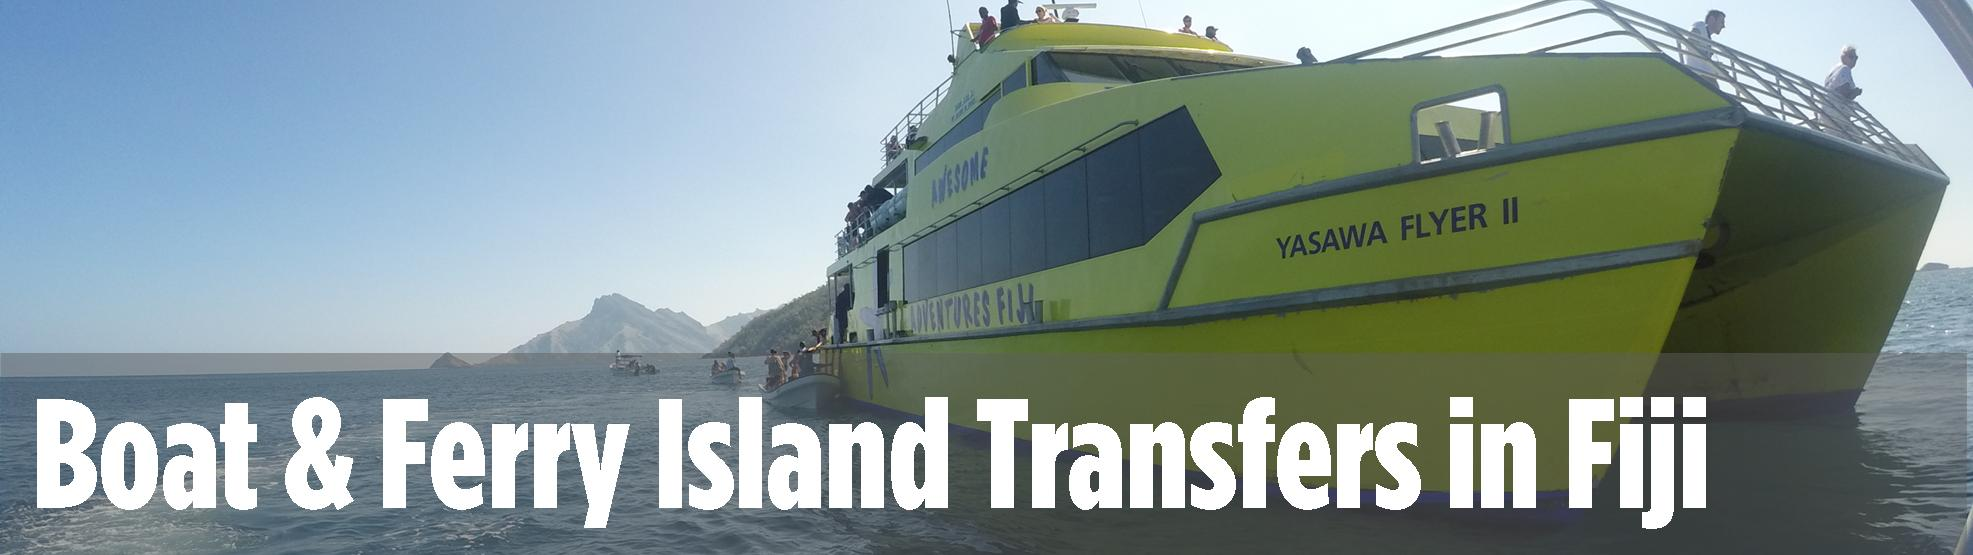 Boat & Ferry Island Transfers in Fij